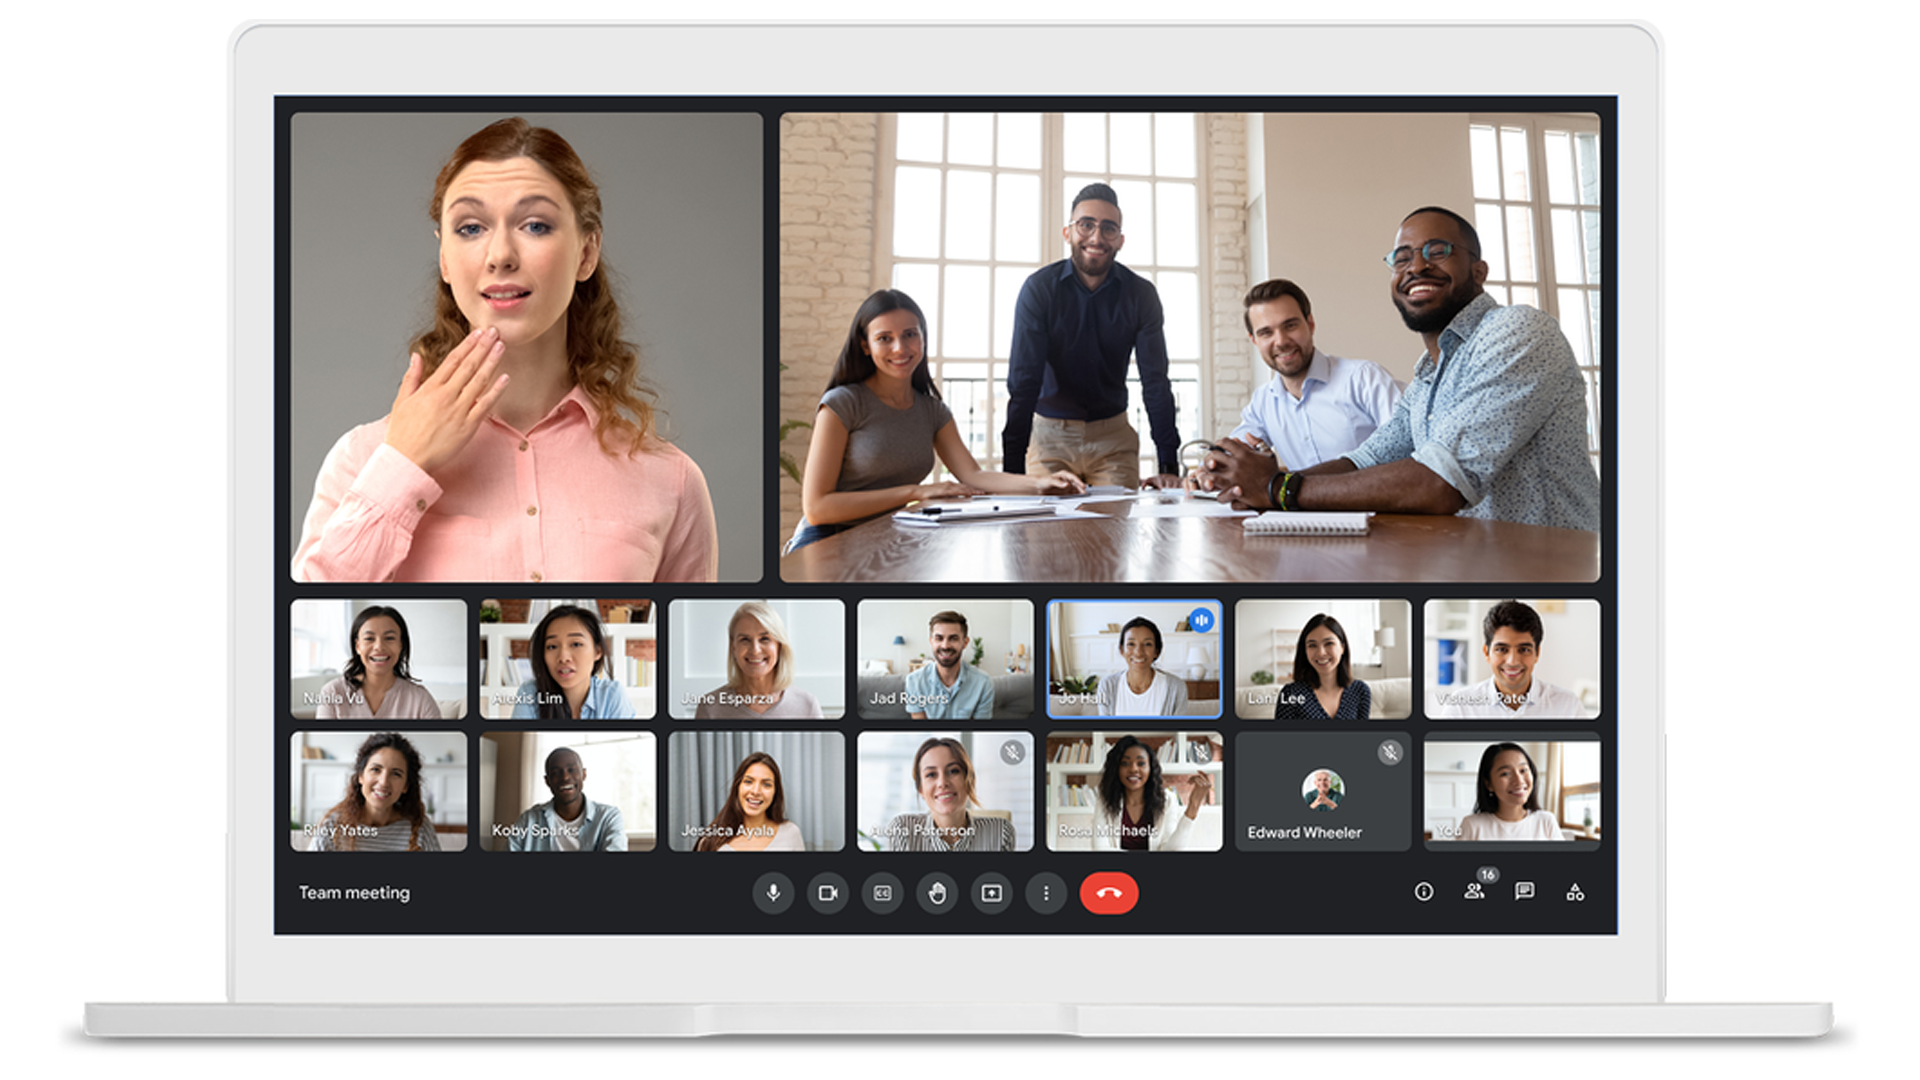 A Google Meet stream with multiple pinned video feeds.